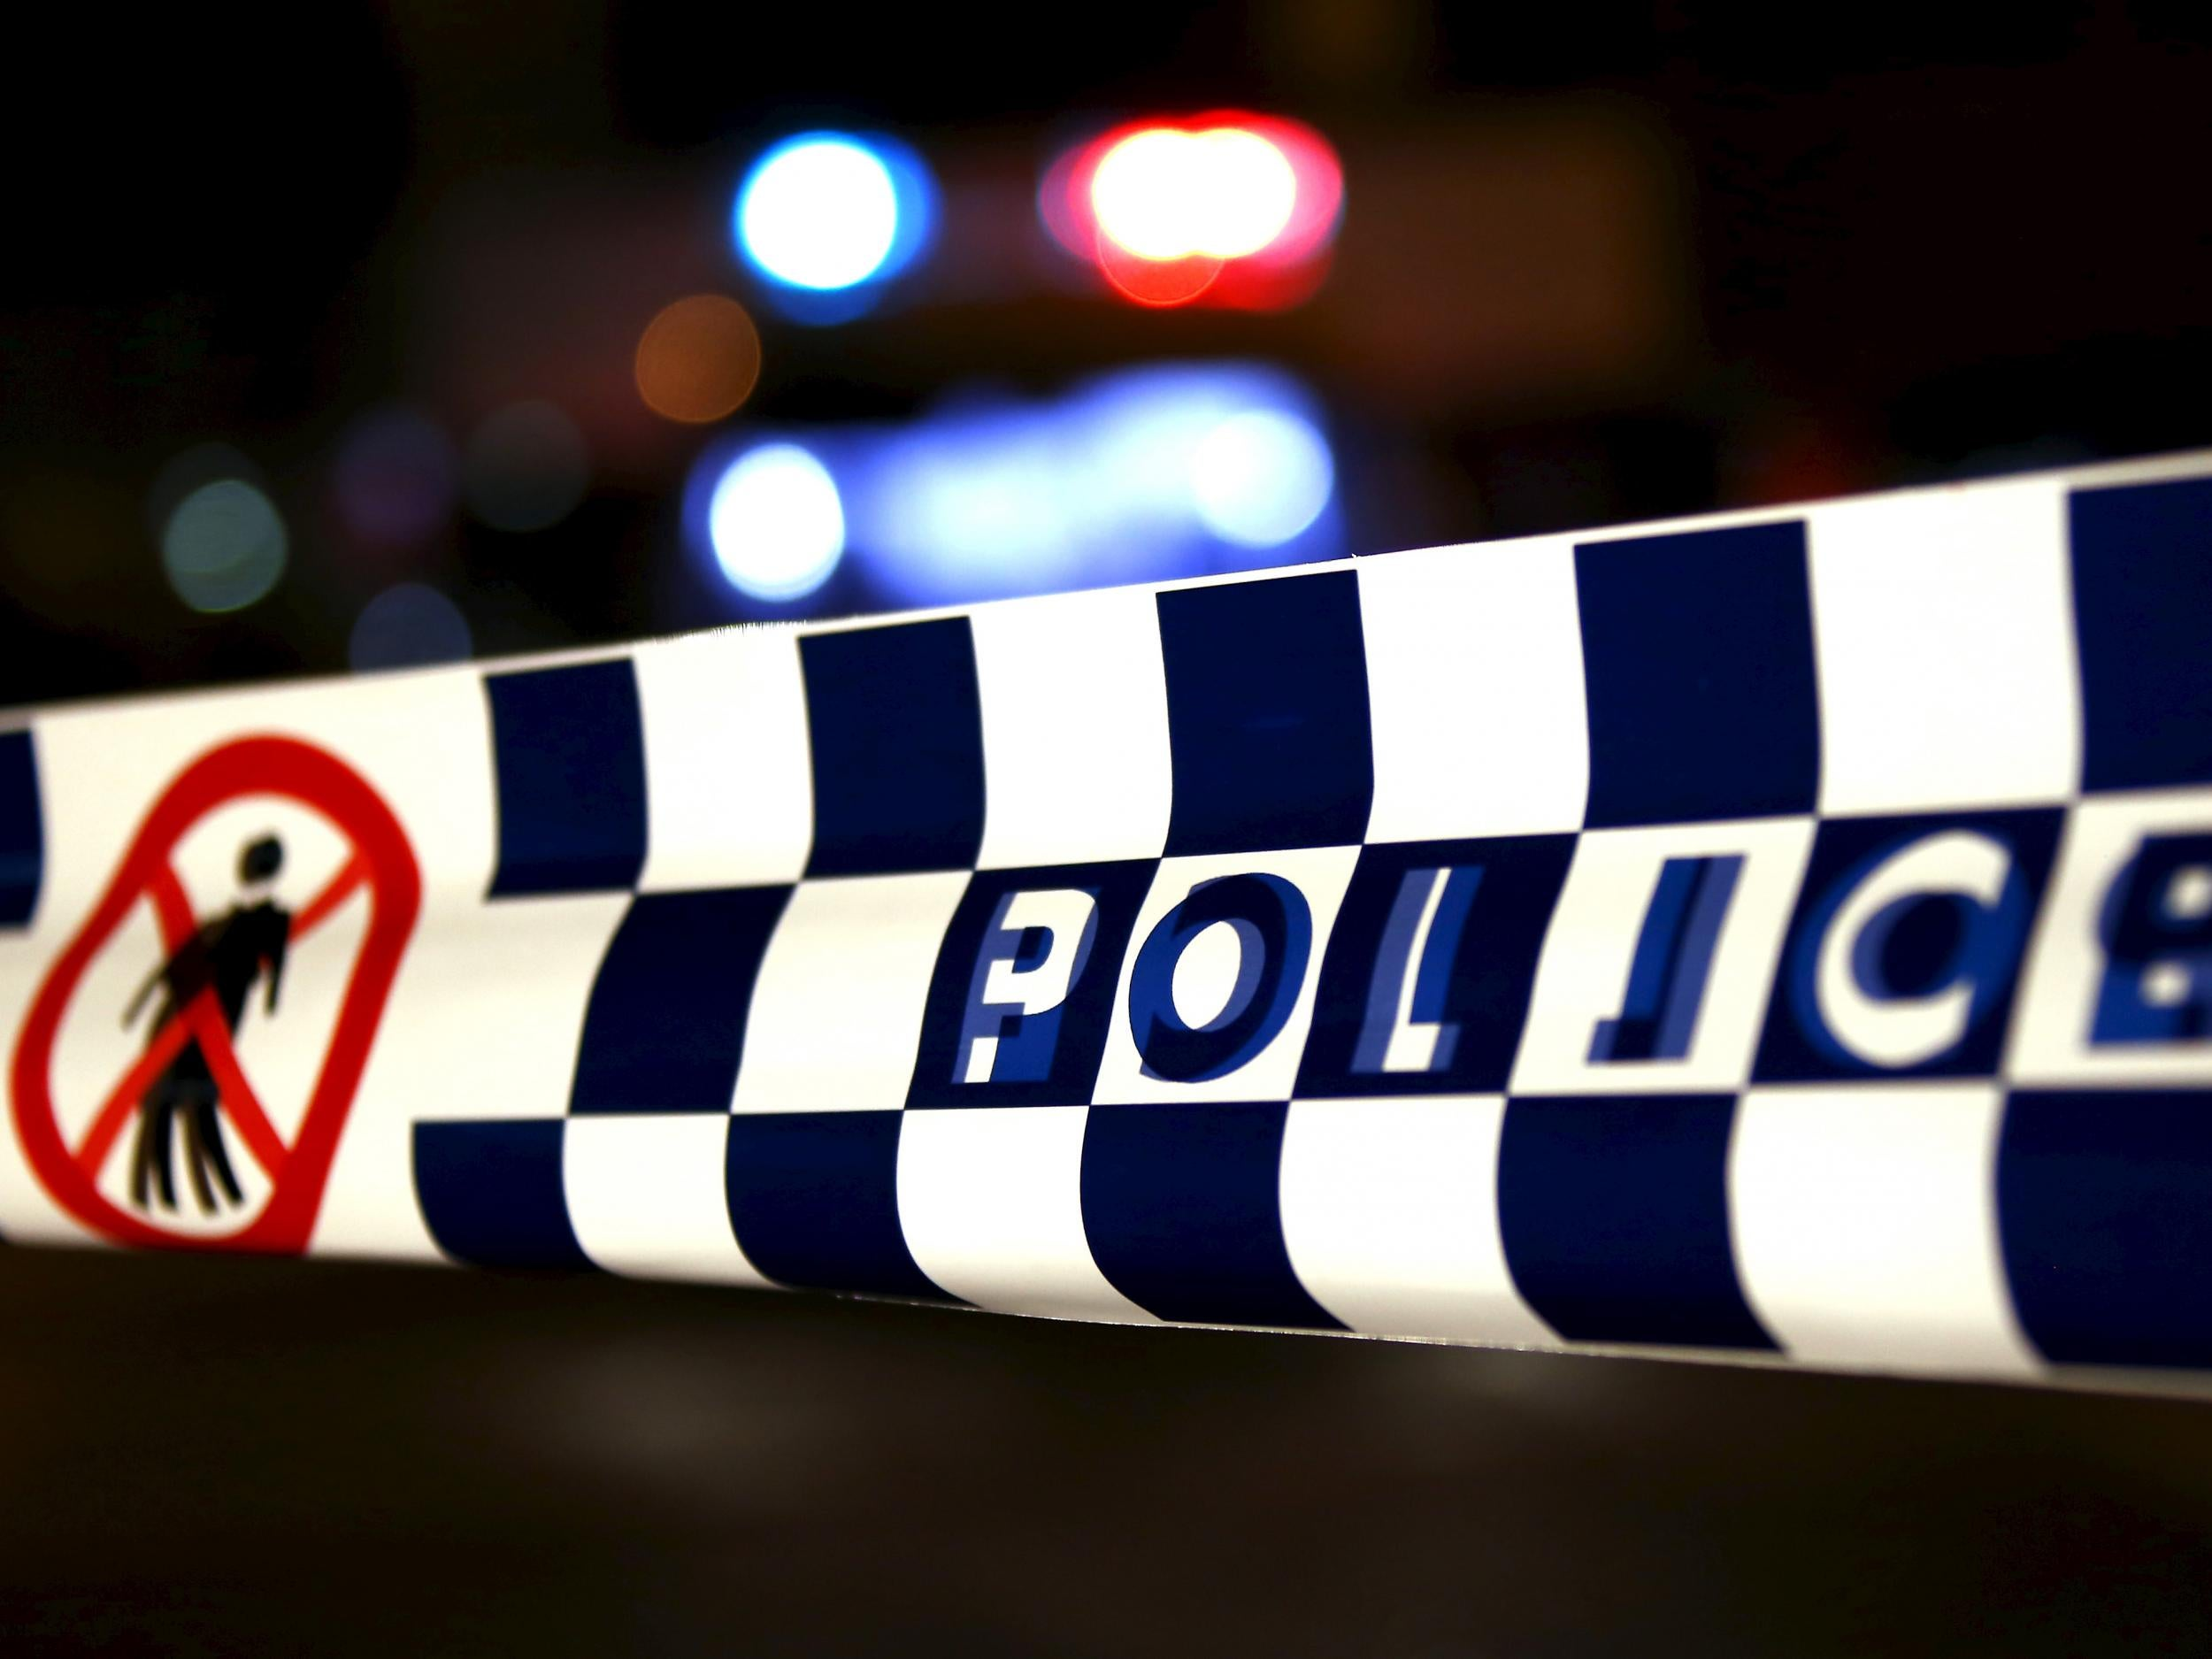 Australia stabbing: Police shoot man dead after 'multiple' people knifed at shopping centre photo